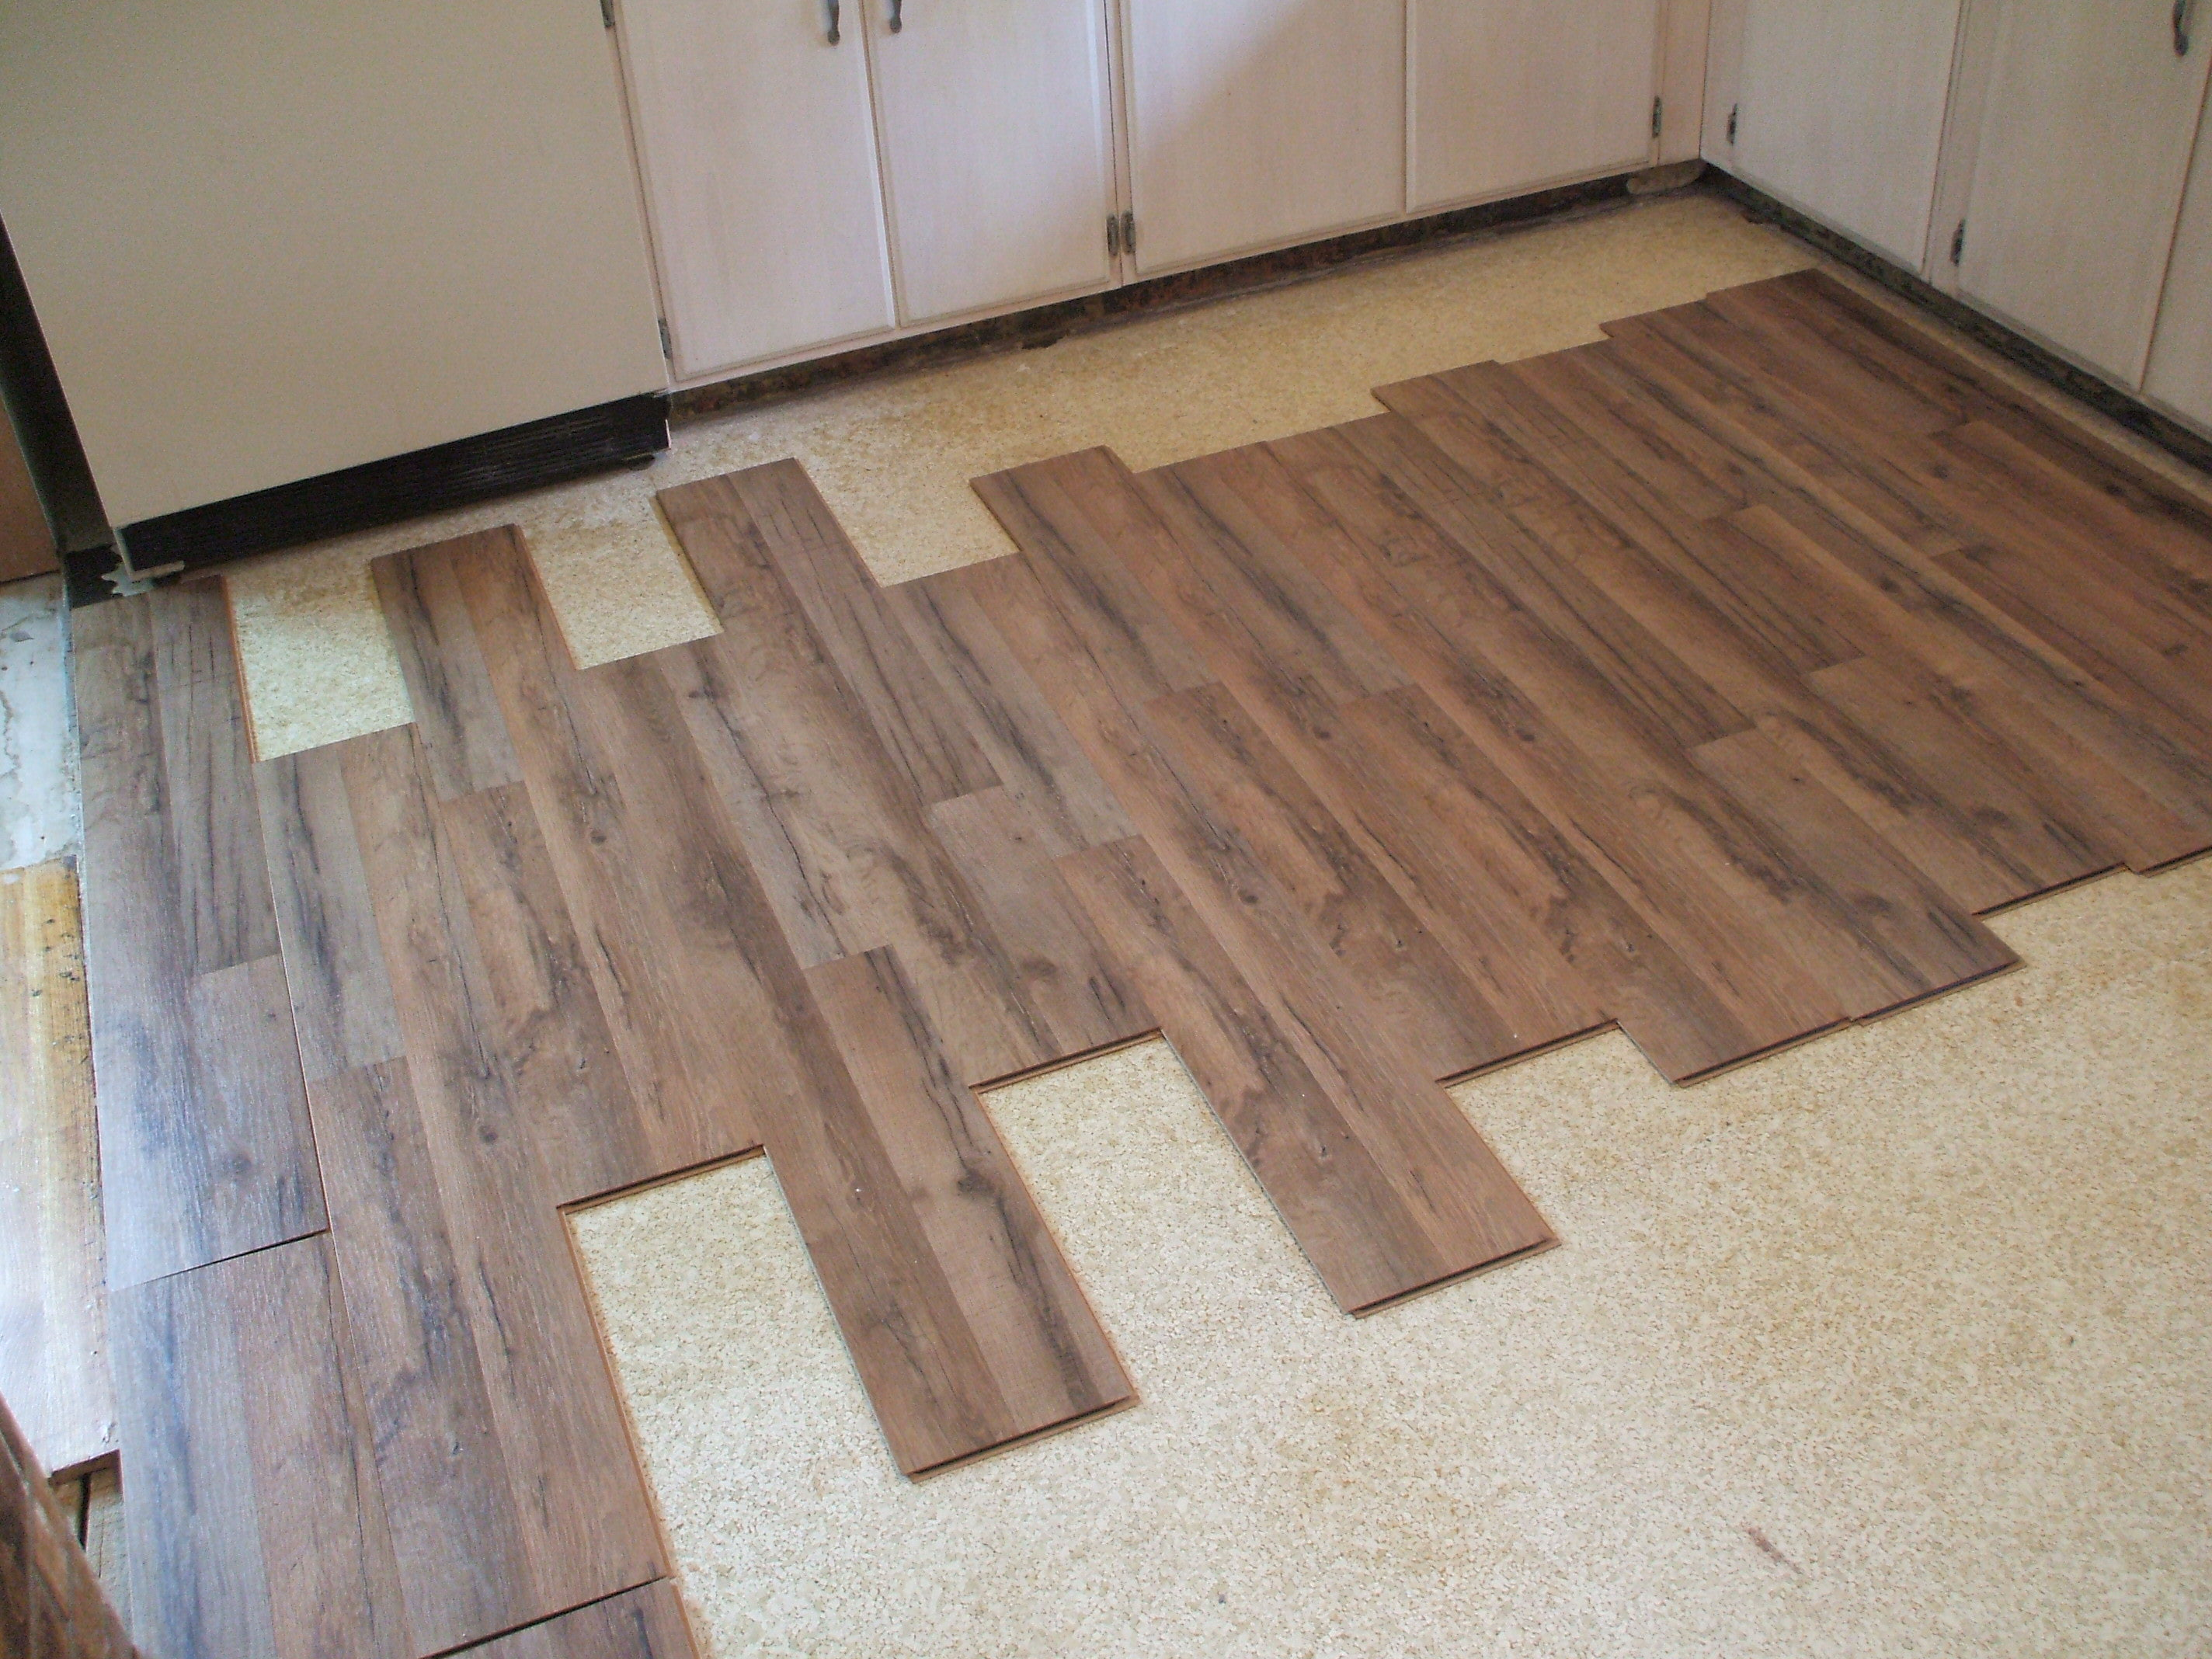 Uneven Kitchen Floor Flooring Options For Your Rental Home Which Is Best